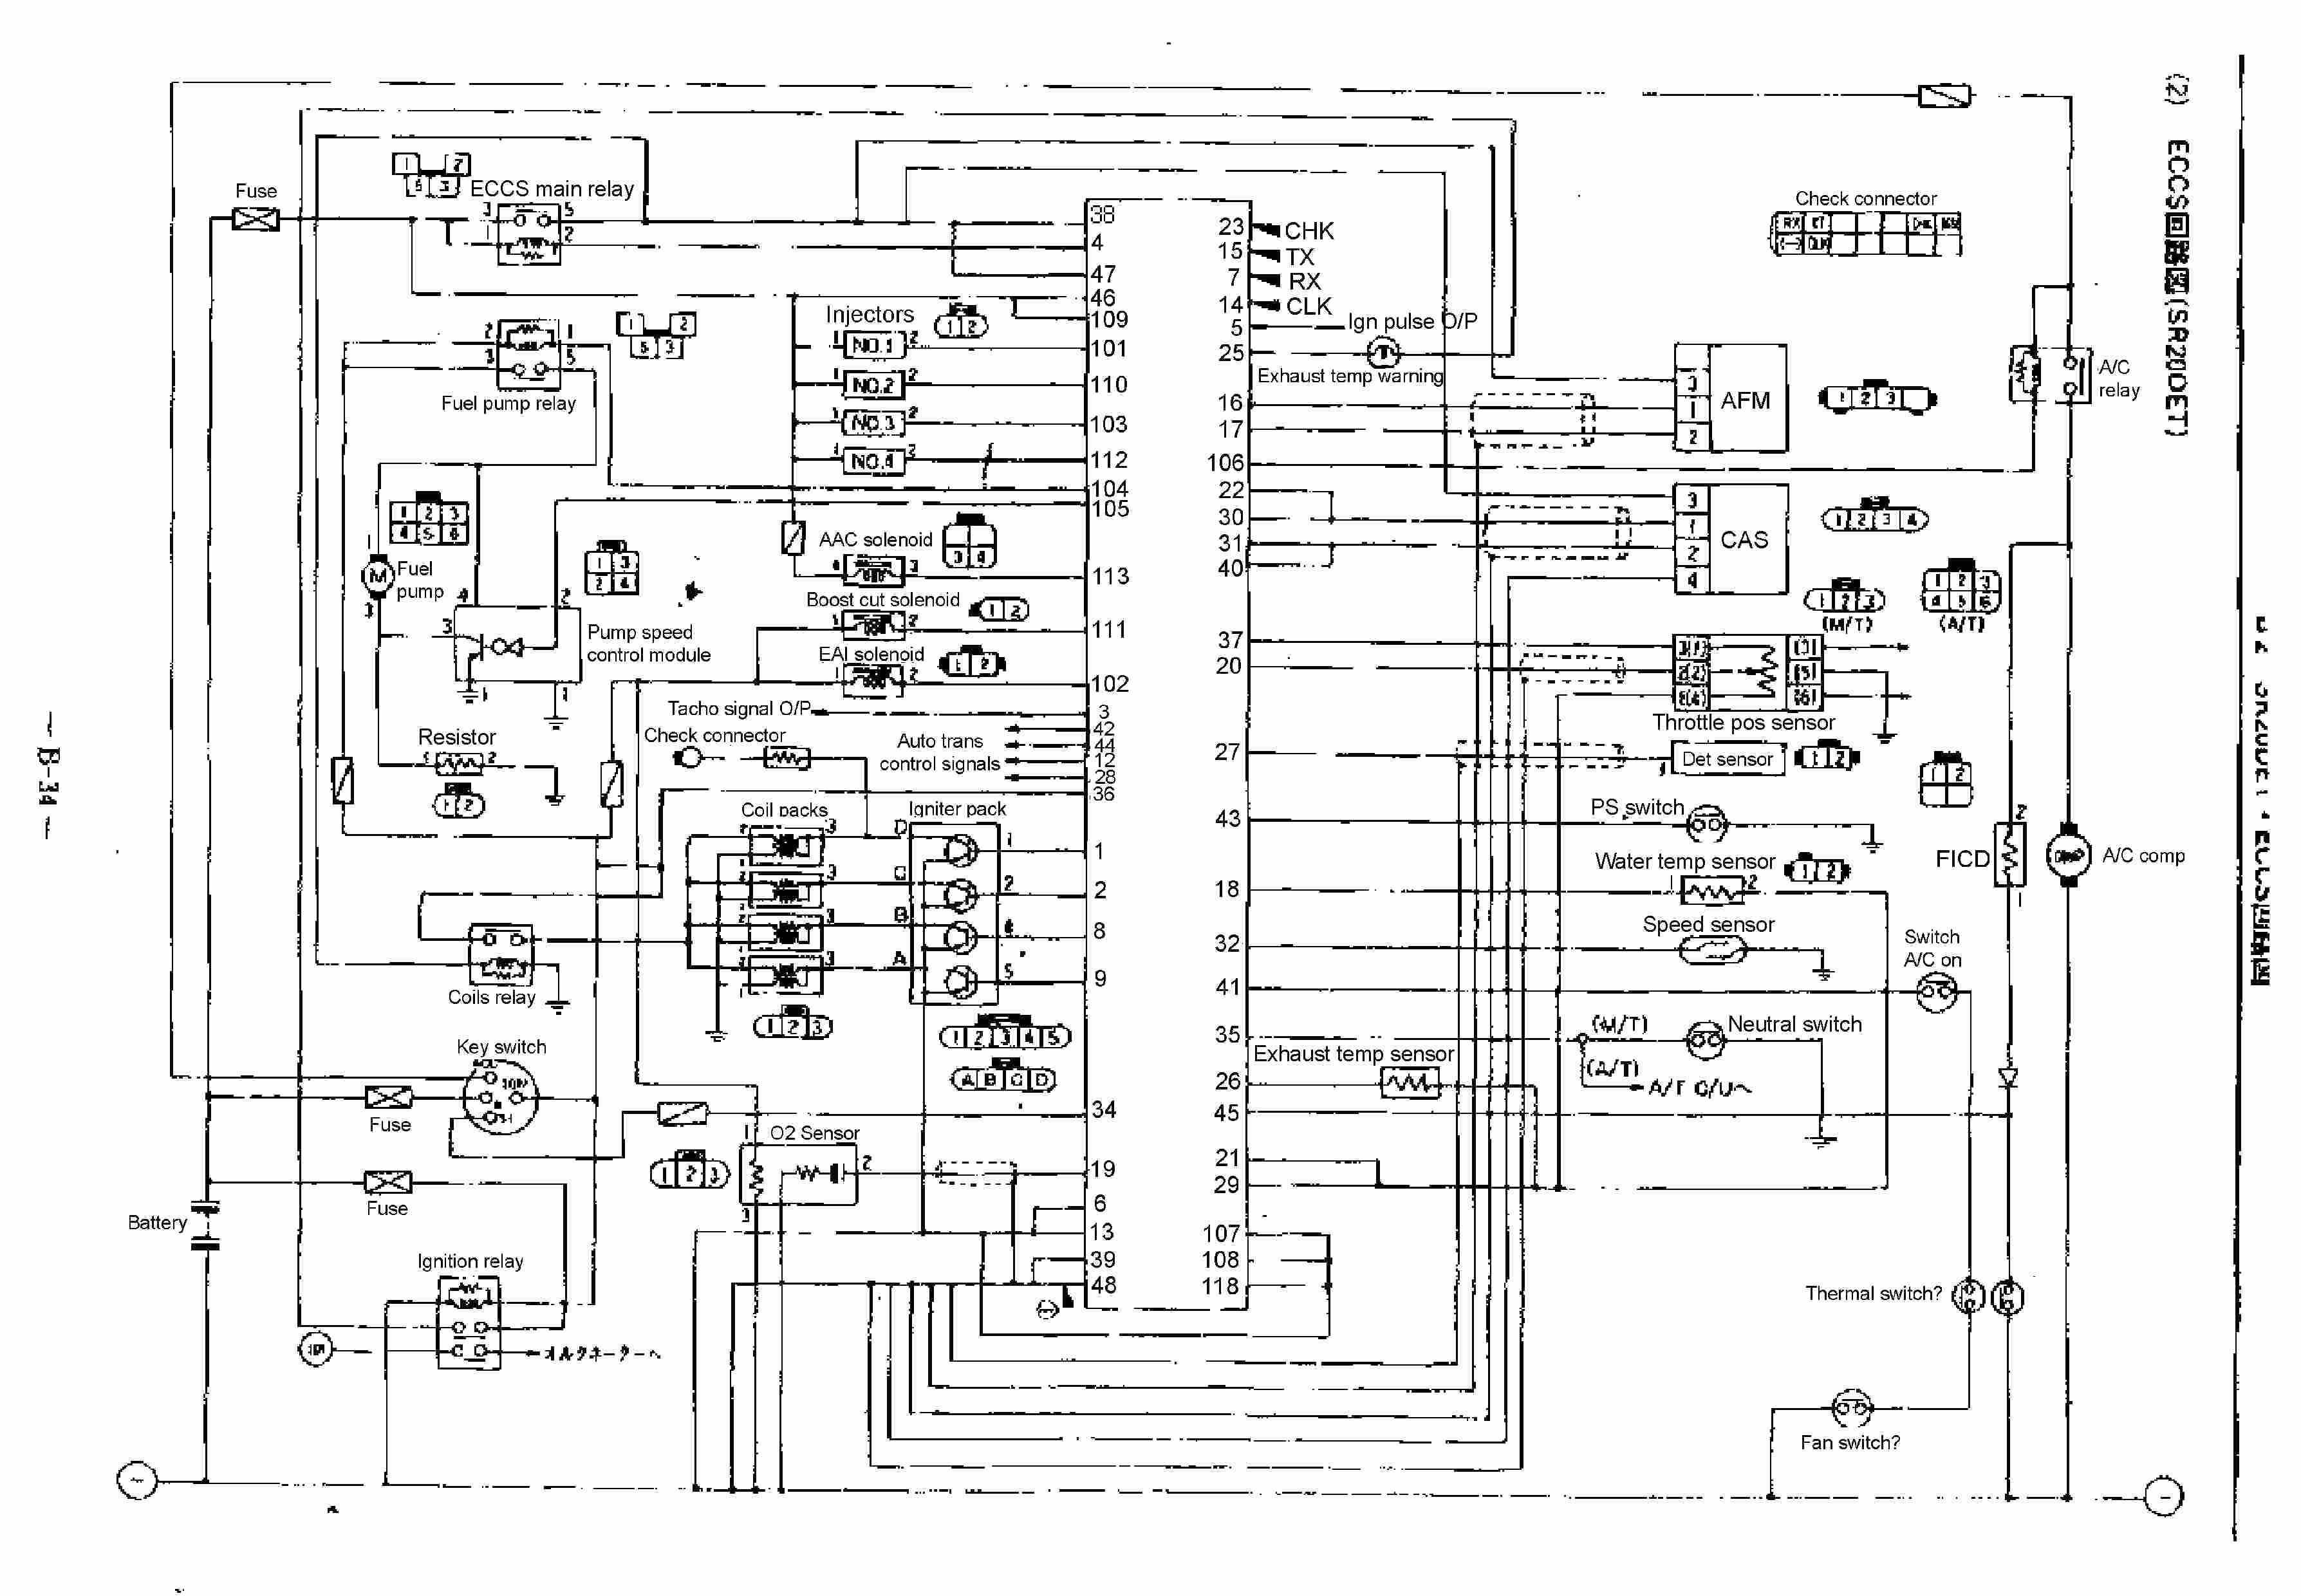 2001 Nissan Xterra Engine Diagram Wiring Diagrams Stereo Library Cooling System Schematic